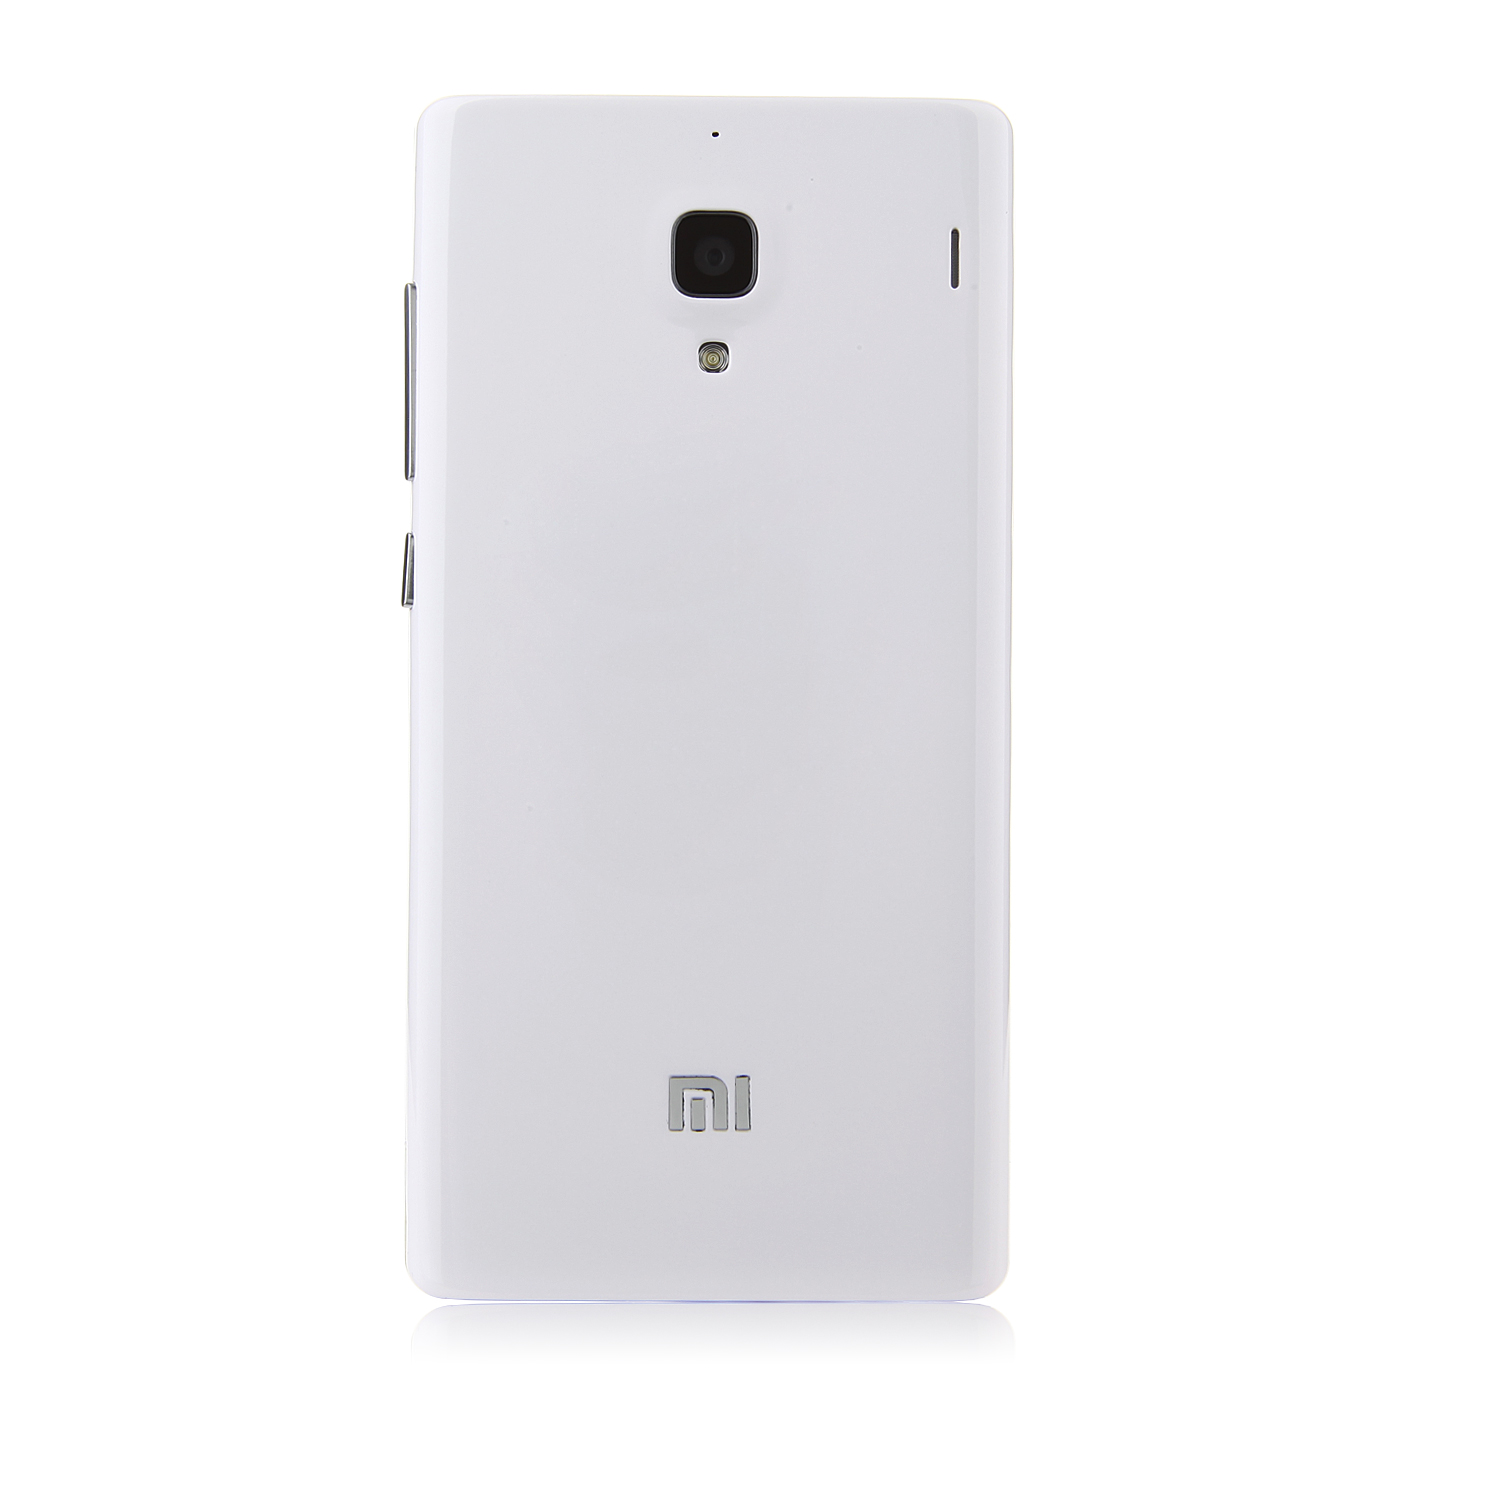 Replacement Battery Cover Back Case Frosted Case for XIAOMI Redmi 1S Smartphone White